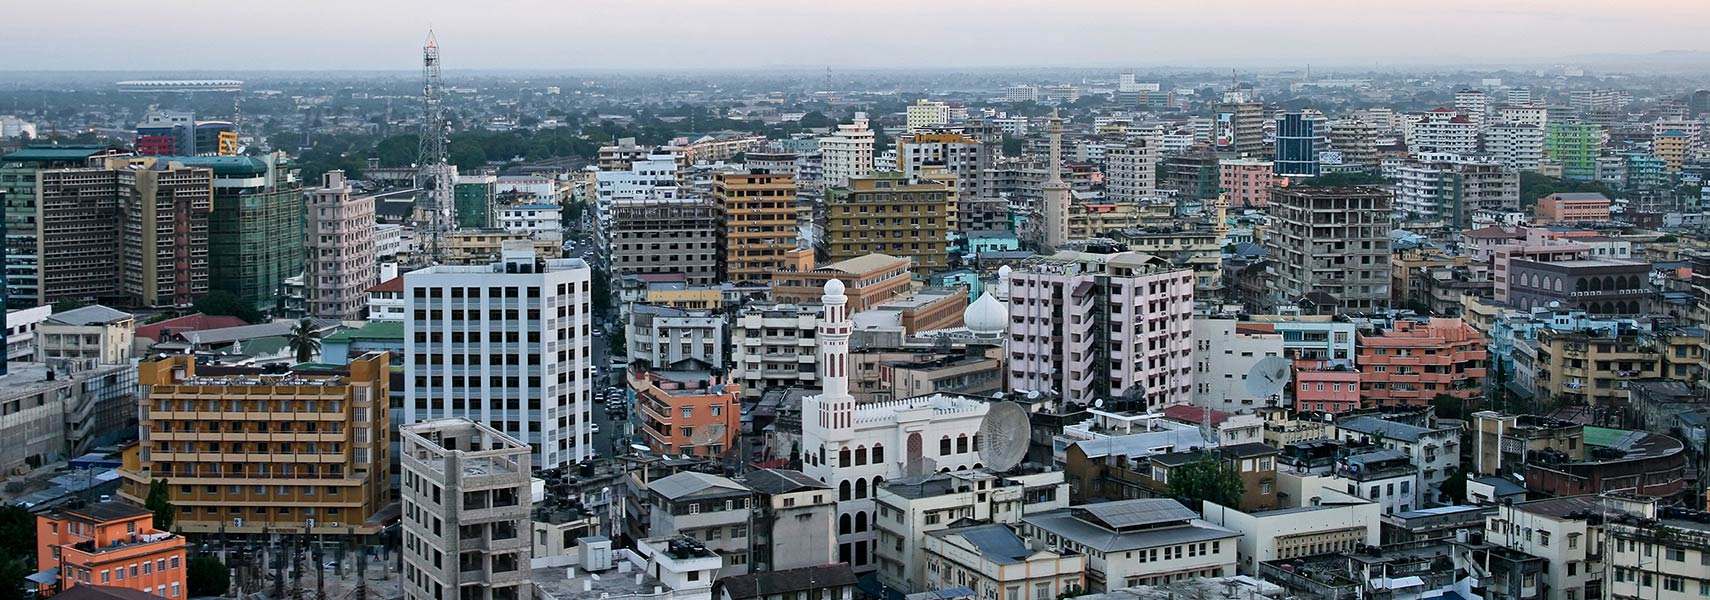 Google Map of Dar es Salaam, Tanzania - Nations Online Project on google data, google mobile, google wifi, google security, google wireless, google android, google amps,